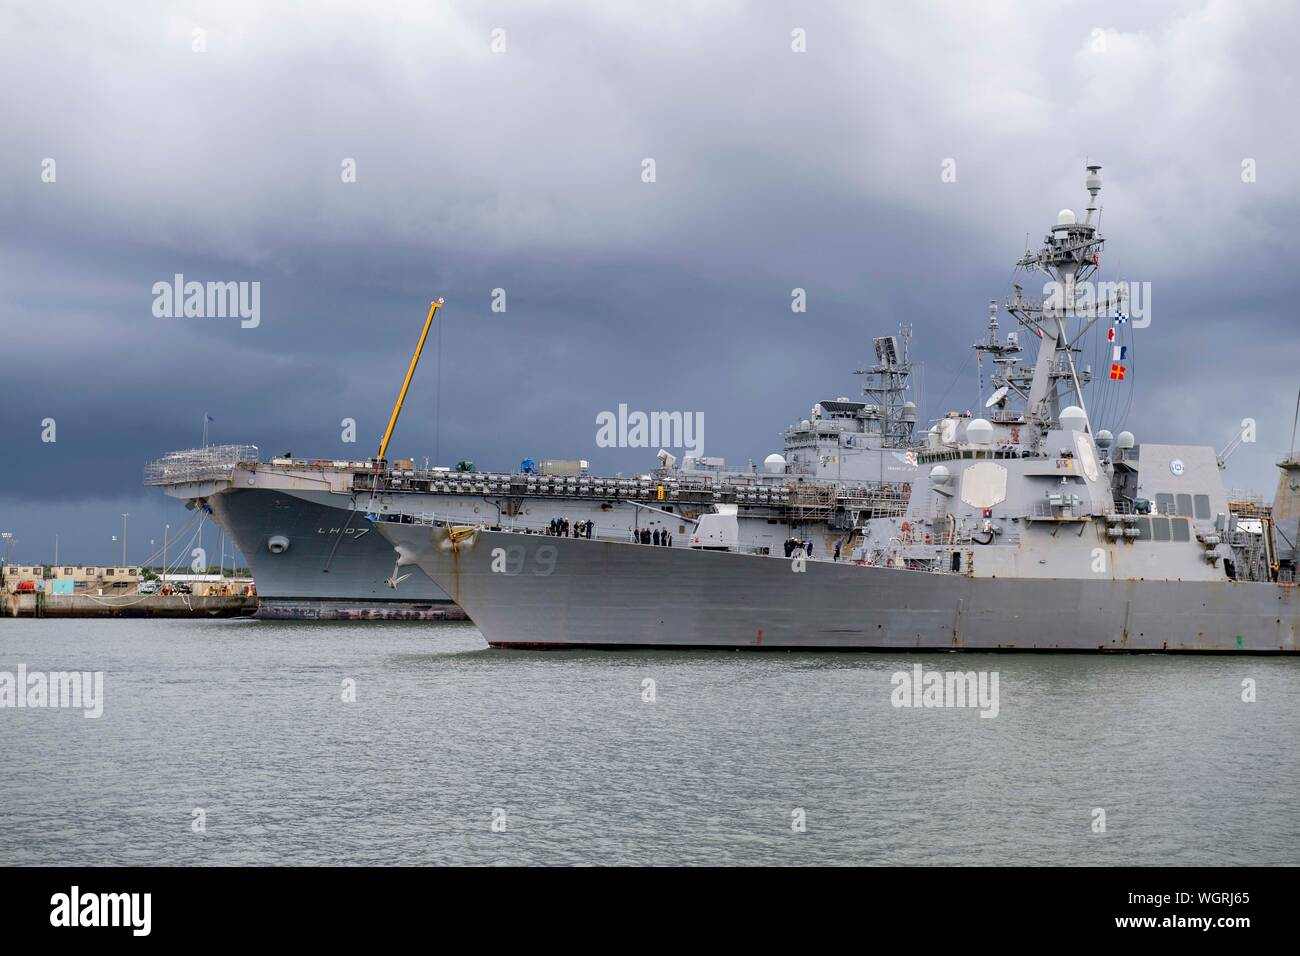 190830-N-QI061-4265  JACKSONVILLE, Fla. (Aug. 30, 2019) The Arleigh Burke-class guided-missile destroyer USS Farragut (DDG 99) departs from Naval Station Mayport as Commander, U.S. 4th Fleet orders all U.S. Navy ships homeported in the area to sortie ahead of Hurricane Dorian, which is forecasted to bring high winds and heavy rain to the East Coast. Ships are being directed to areas in the Atlantic where they are best postured for storm avoidance. (U.S. Navy photo by Mass Communication Specialist 3rd Class Nathan T. Beard/Released) Stock Photo